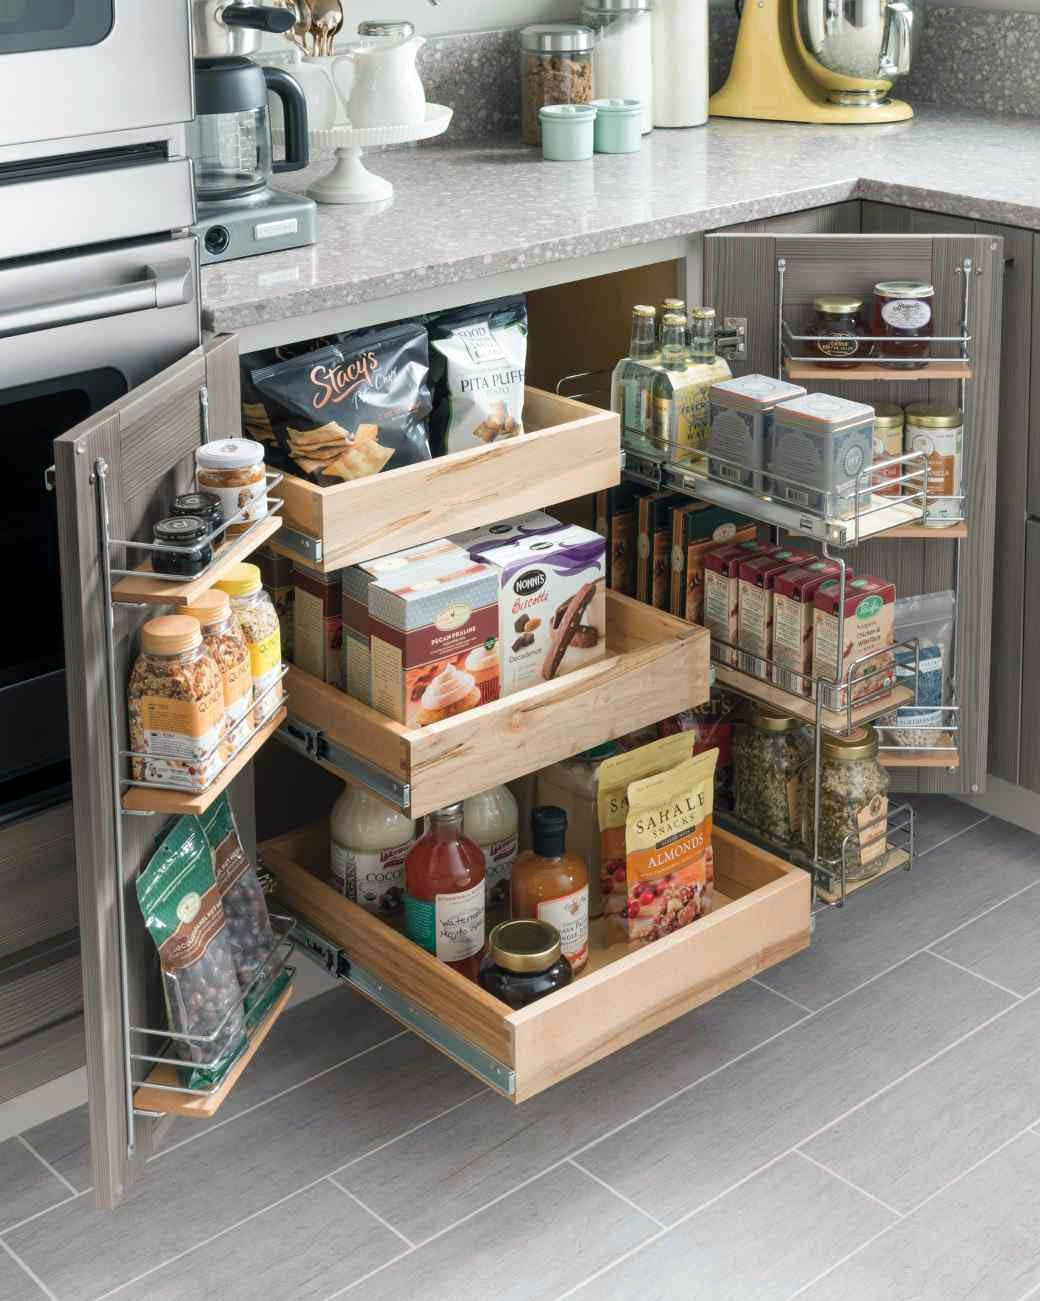 First Rate Innovative Kitchen Cabinet Ideas On This Favorite Site Diy Kitchen Storage Small Kitchen Storage Kitchen Design Small